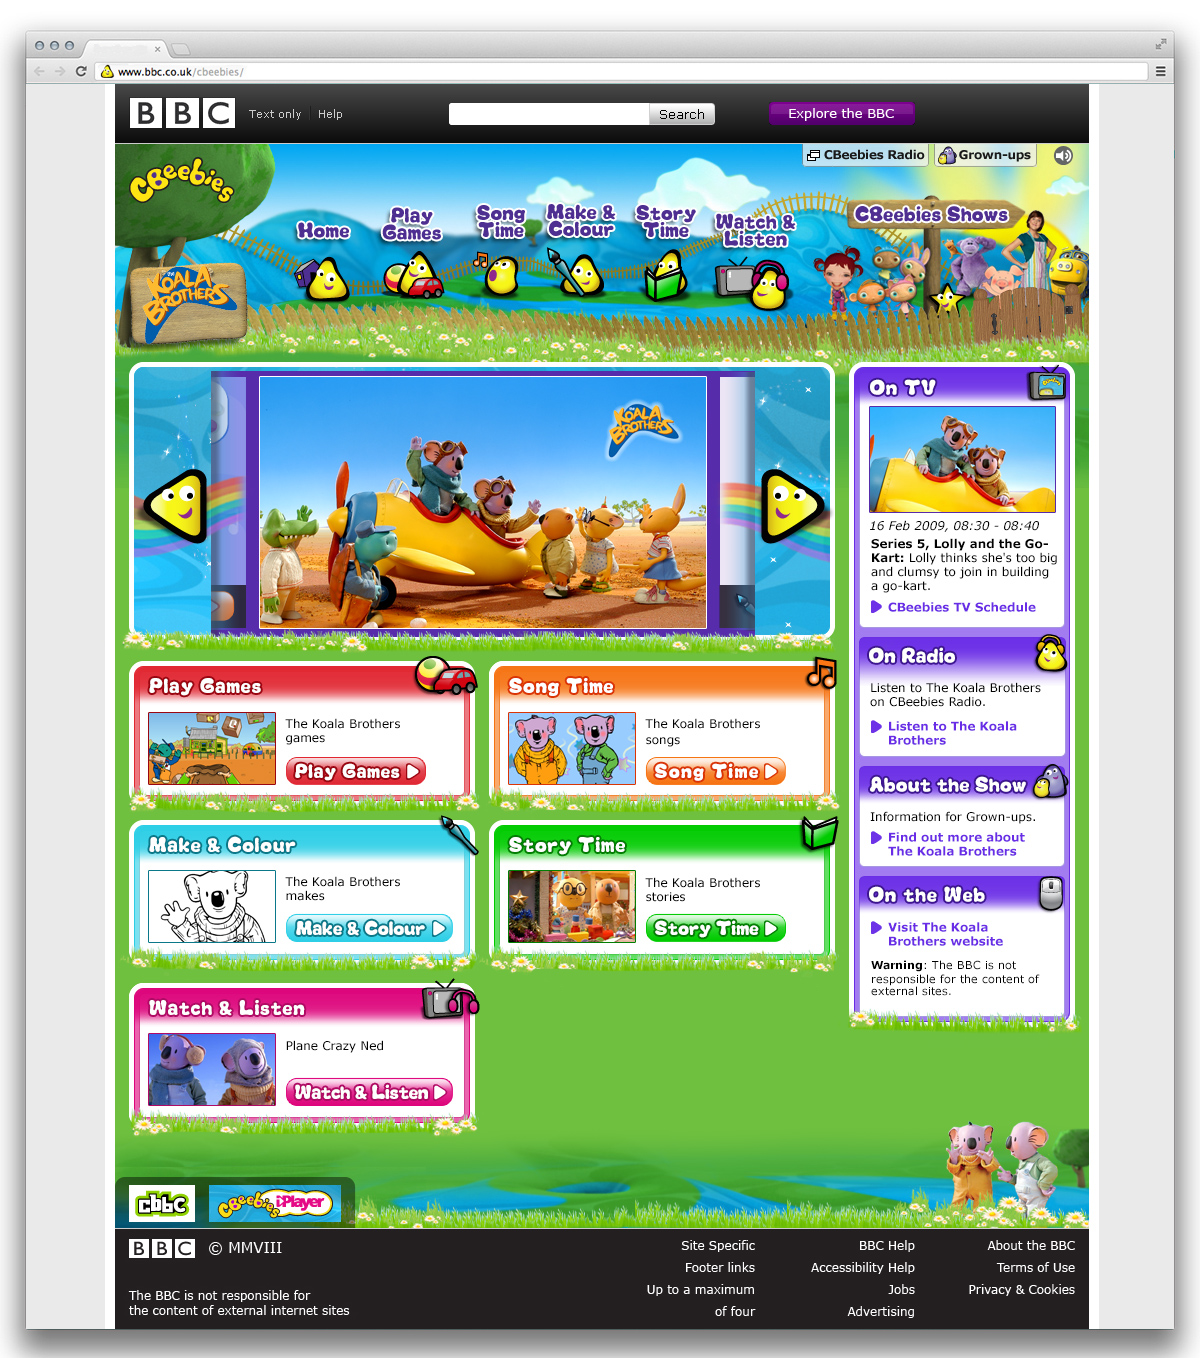 Cbeebies Show